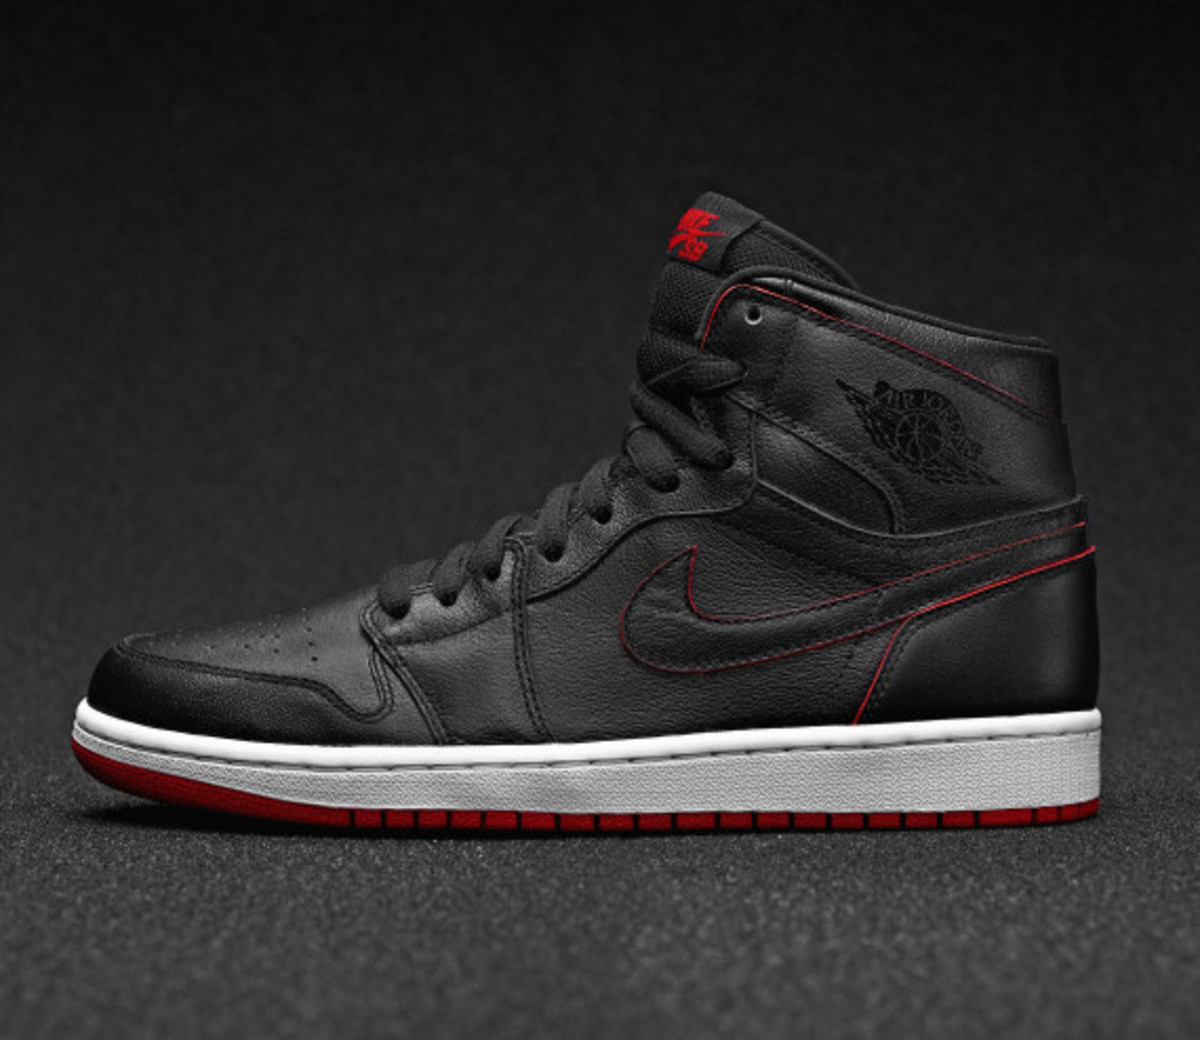 Nike SB x Air Jordan 1 by Lance Mountain - Officially Unveiled - 1